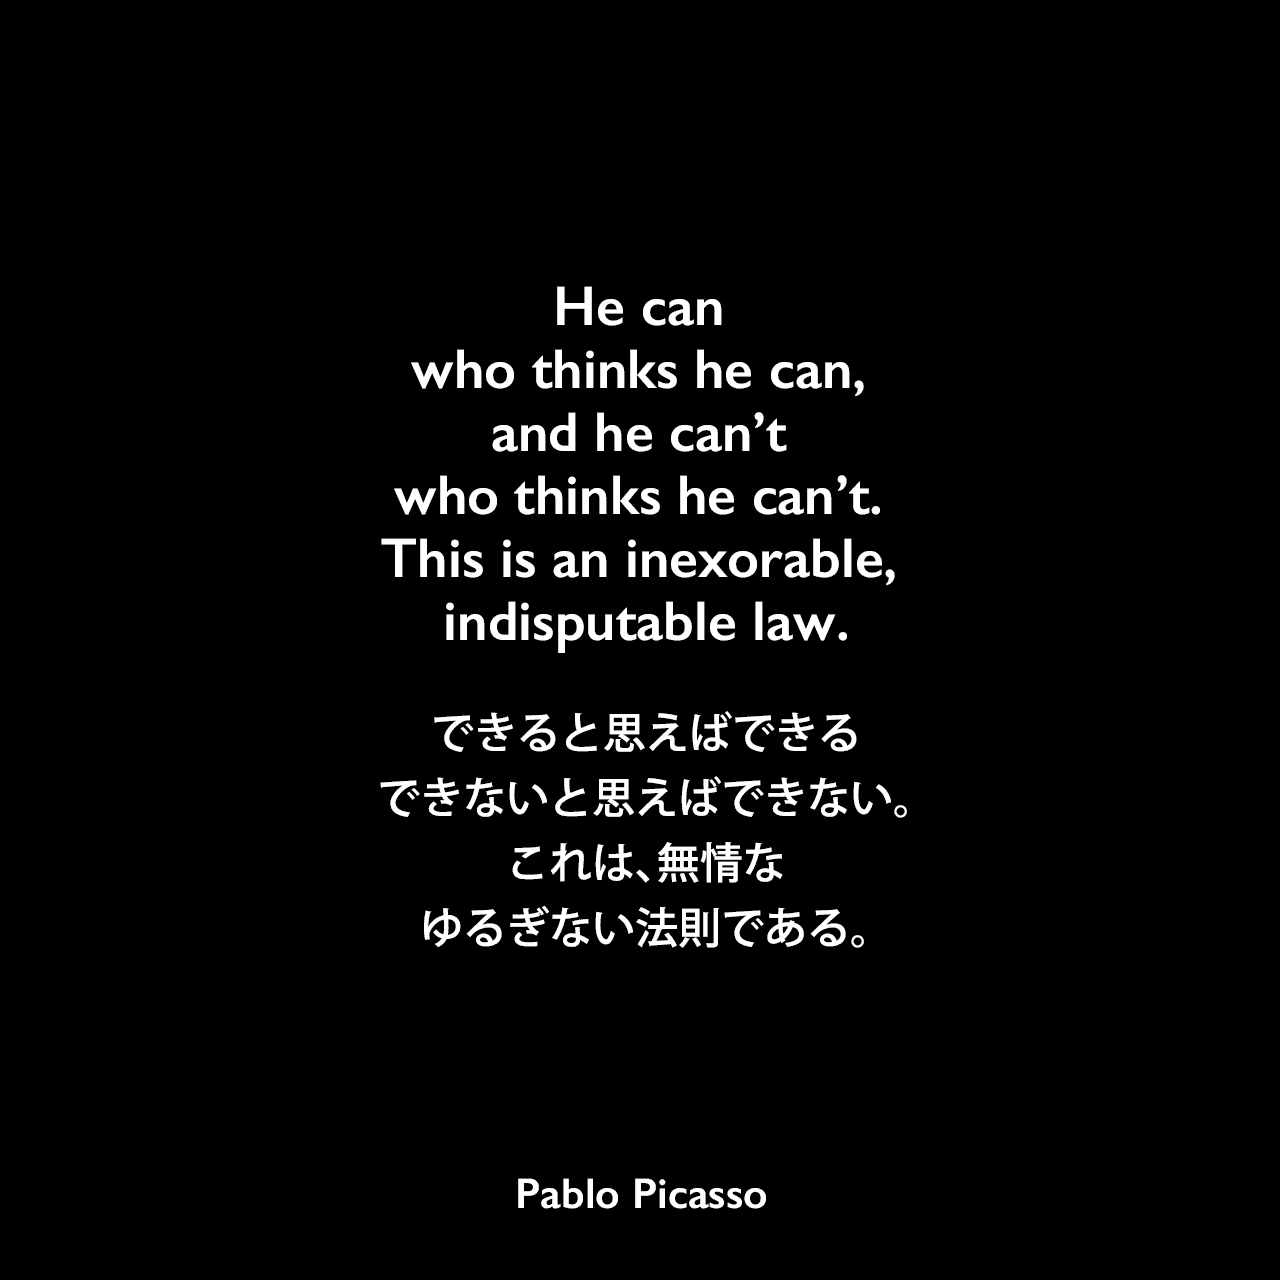 He can who thinks he can, and he can't who thinks he can't. This is an inexorable, indisputable law.できると思えばできる、できないと思えばできない。これは、無情なゆるぎない法則である。